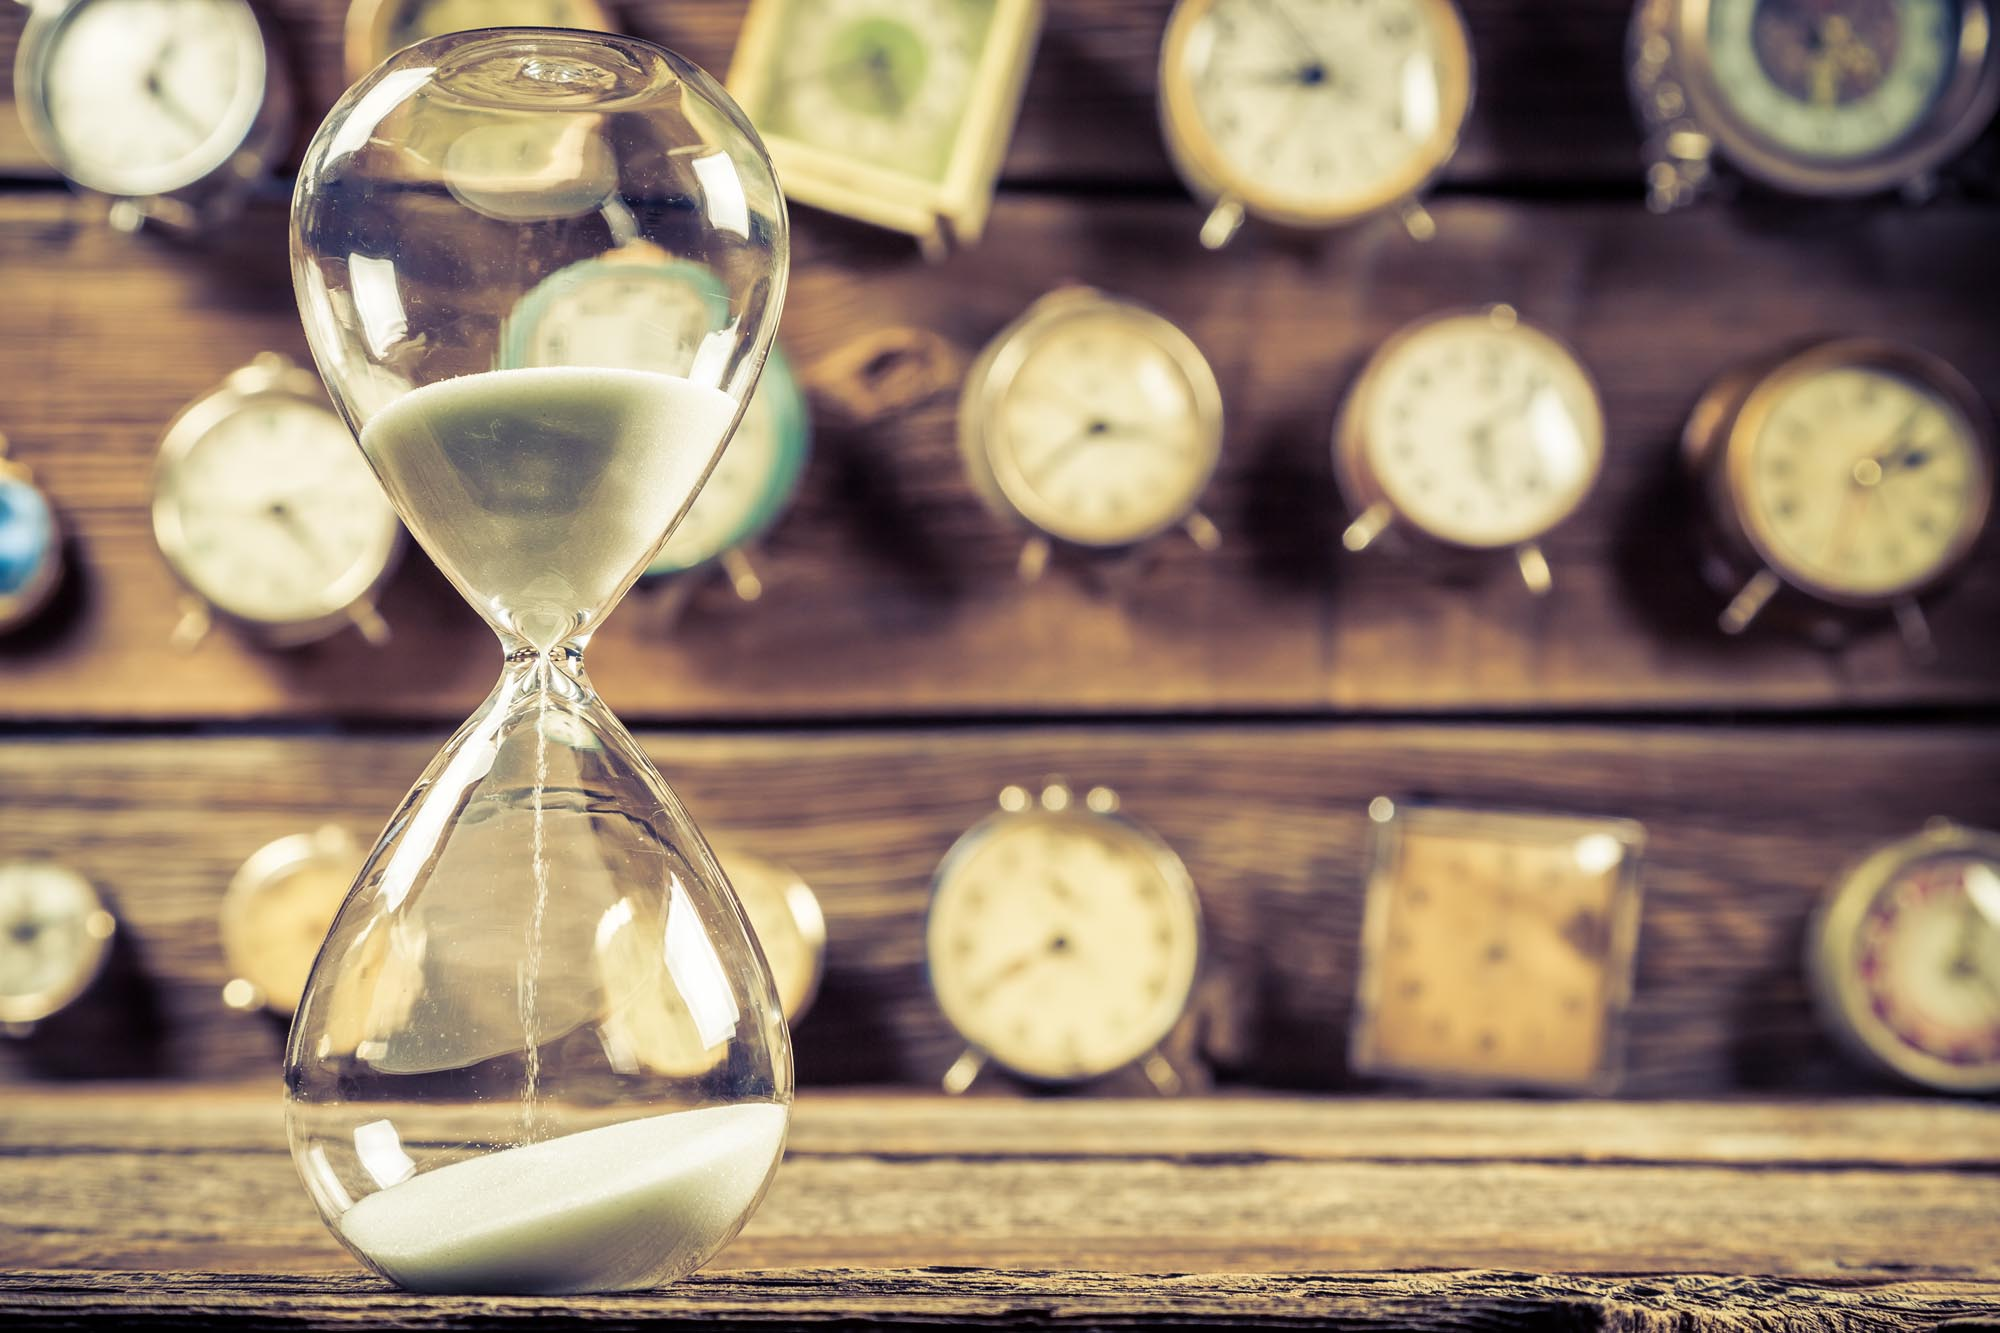 Restaurant Service Training - How to Manage the Wait